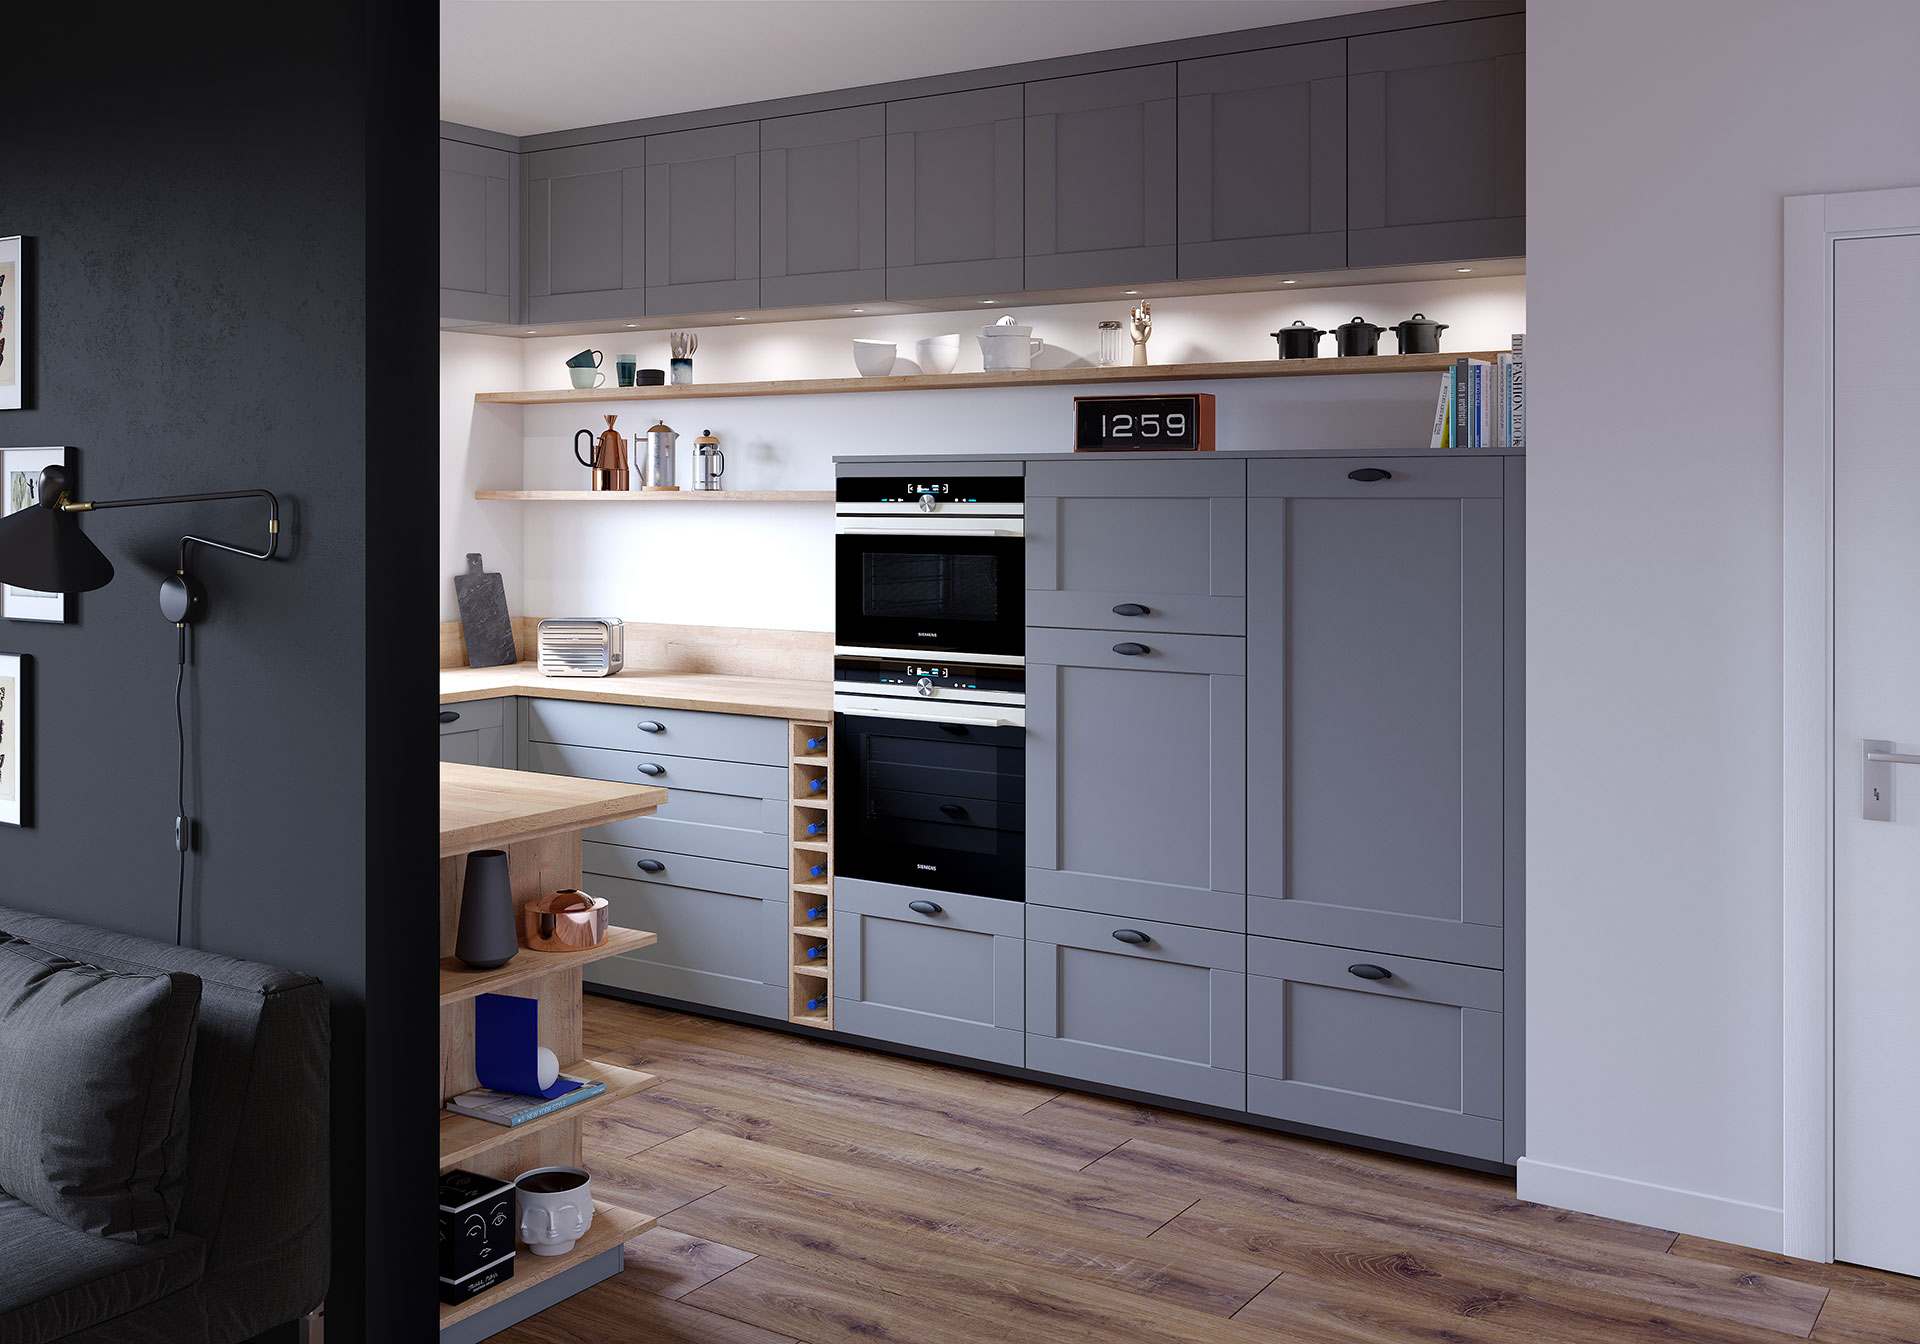 Ad project - 3D visualization of kitchen furniture